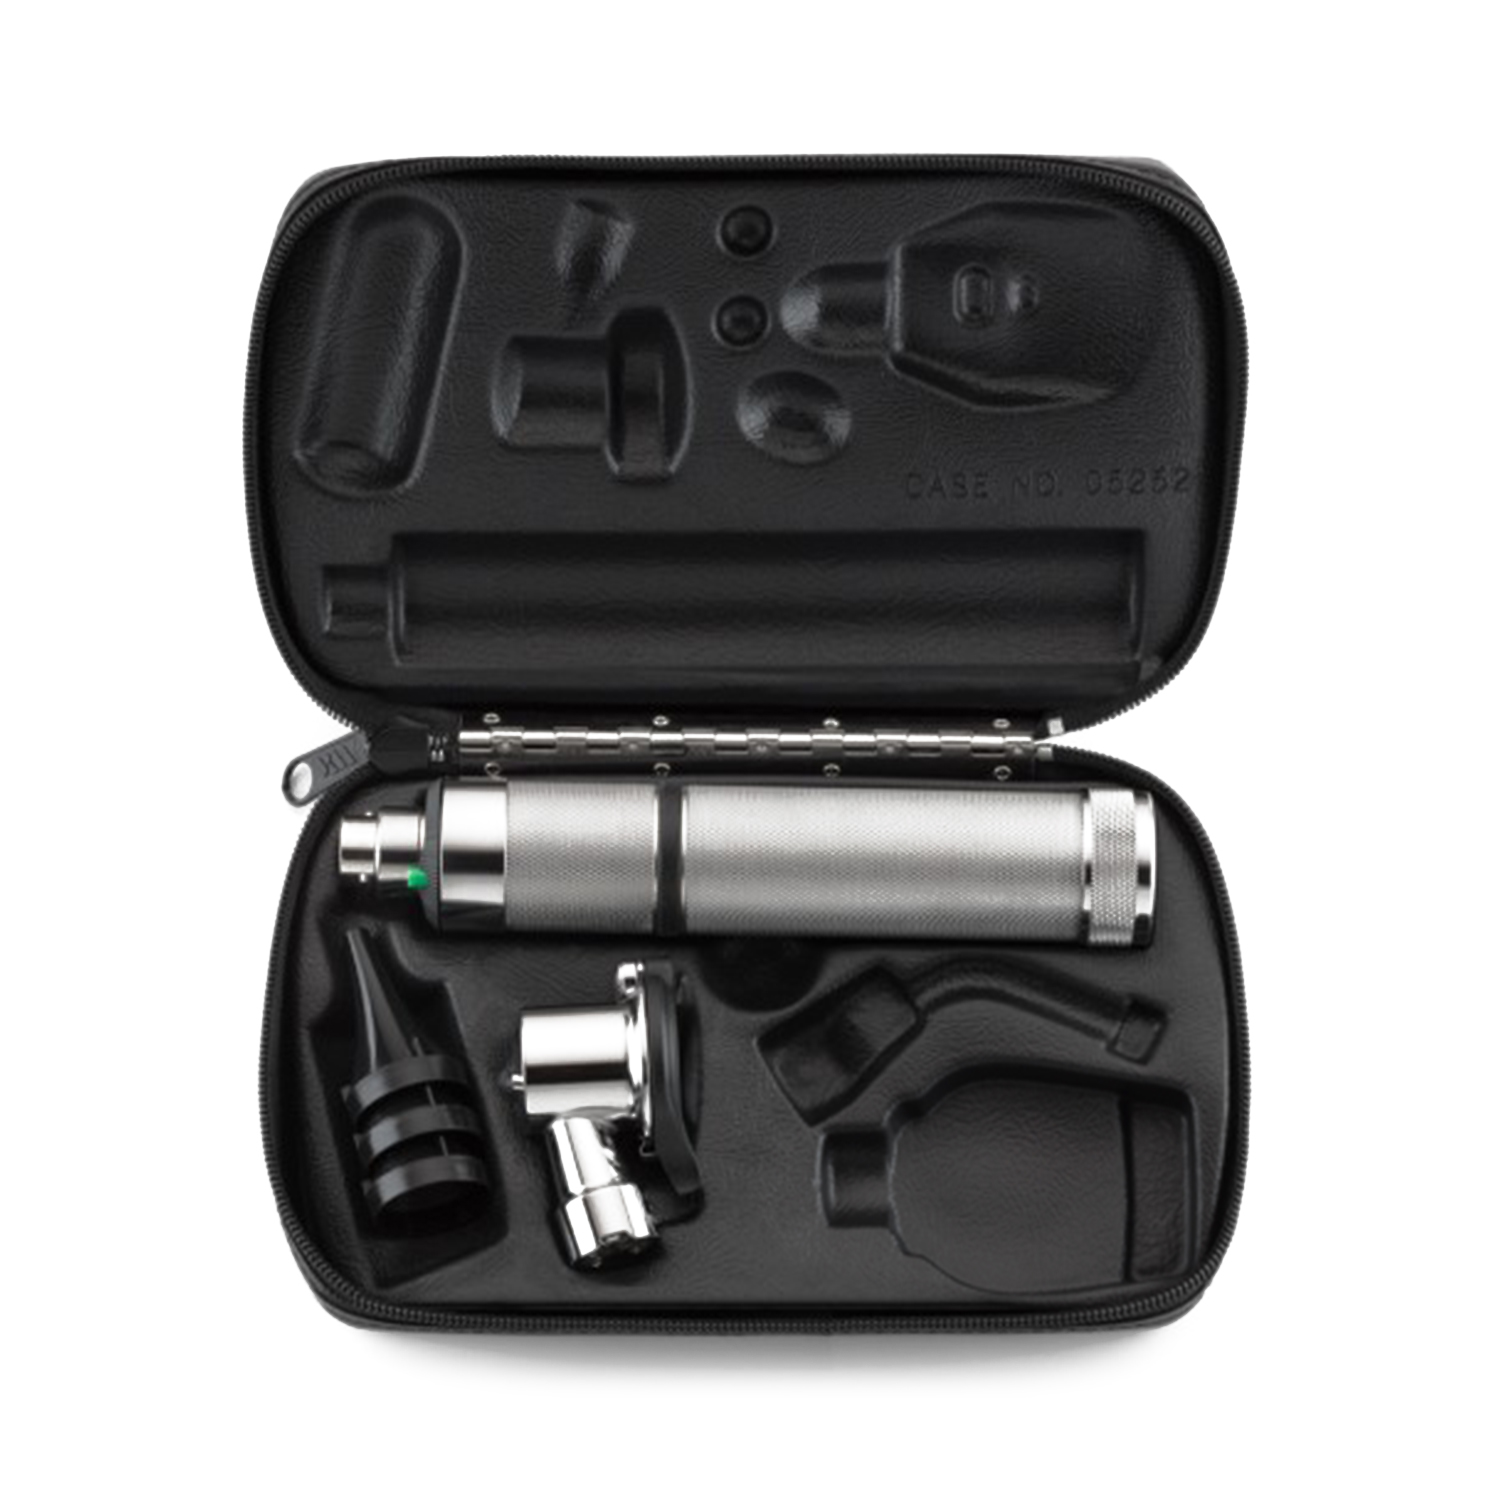 Pneumatic Otoscope Set with Rechargeable Nickel-Cadmium Handle and Hard Case